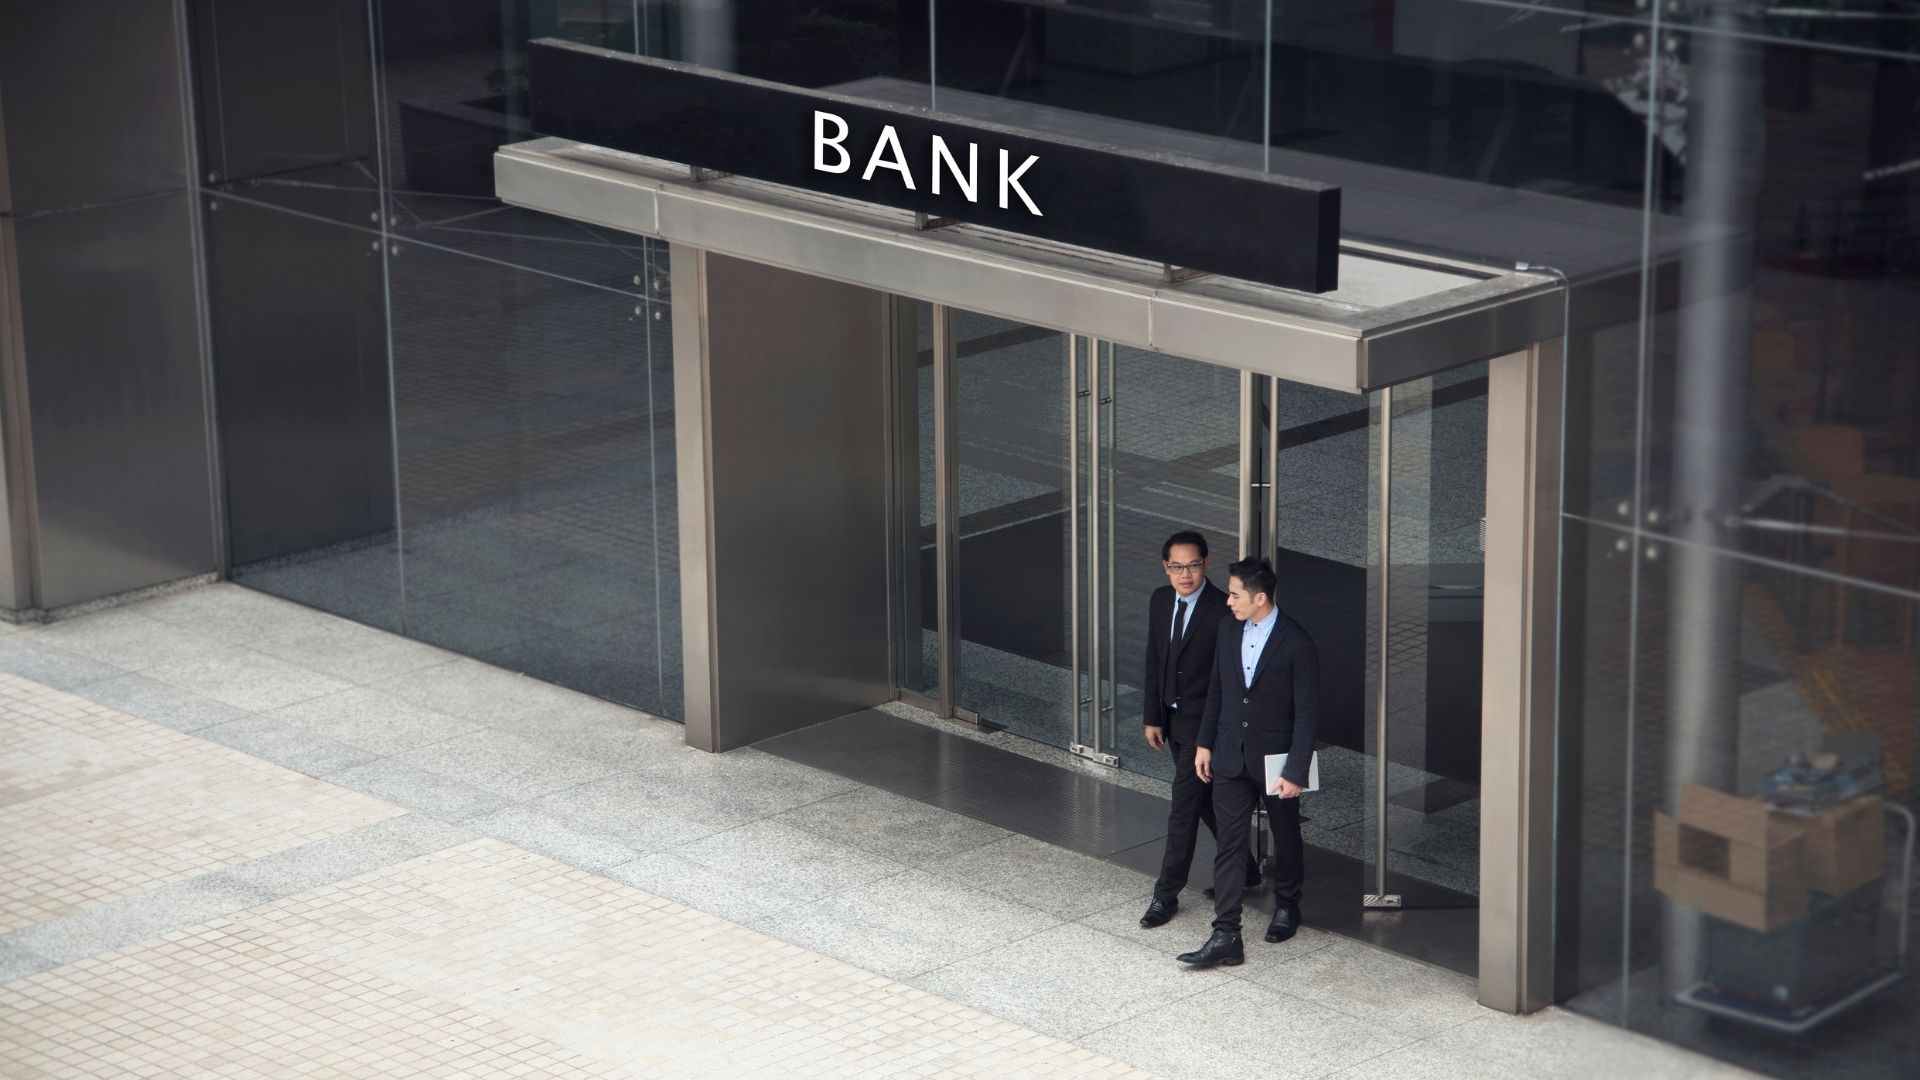 In what ways could the traditional banking improve its Operational Efficiency?